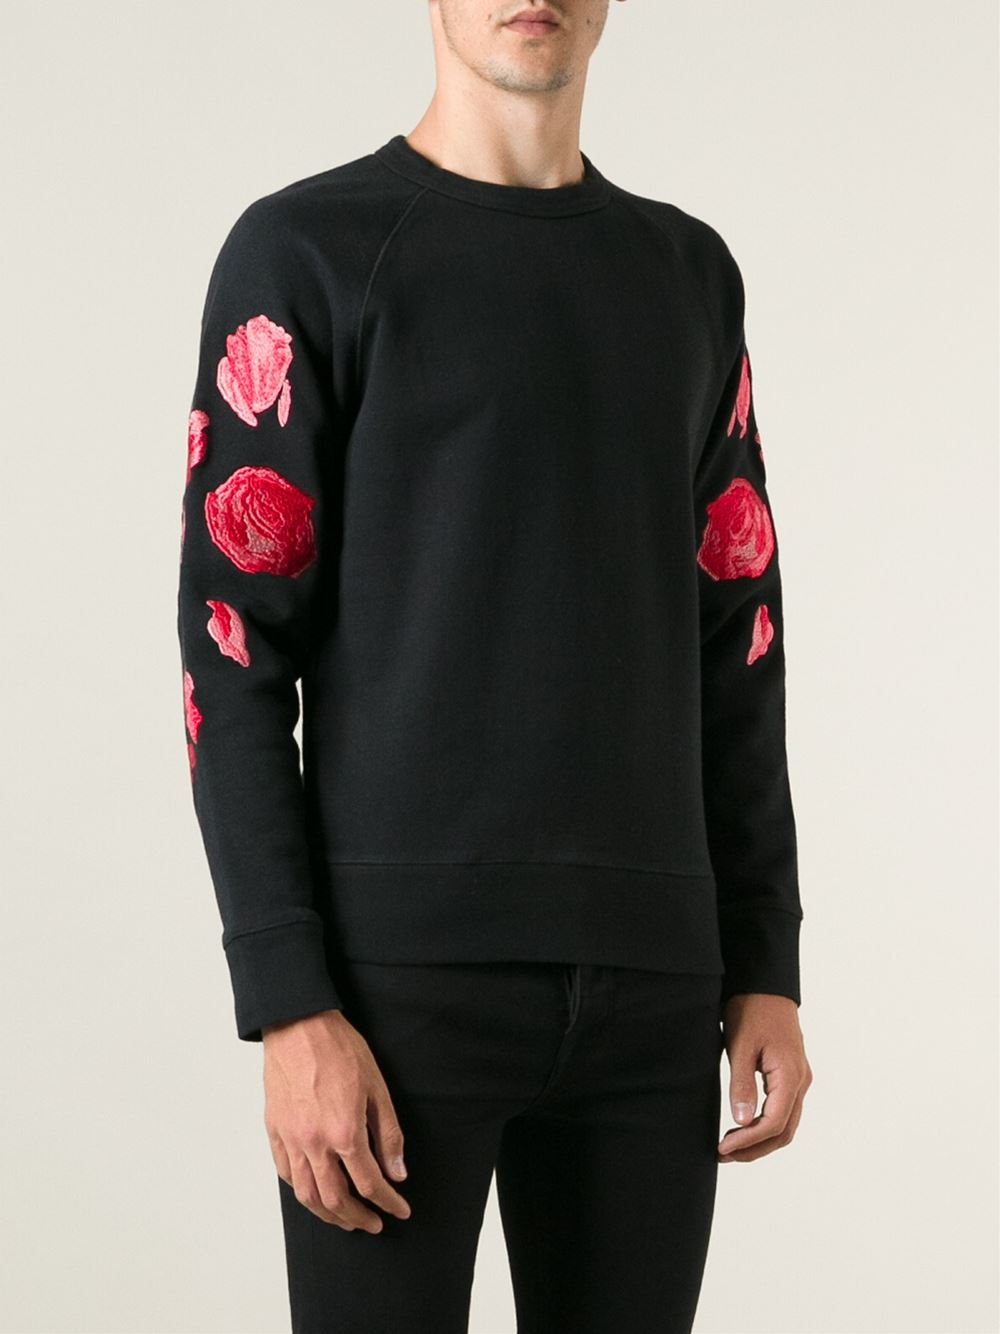 Lyst our legacy embroidered rose sweatshirt in black for men